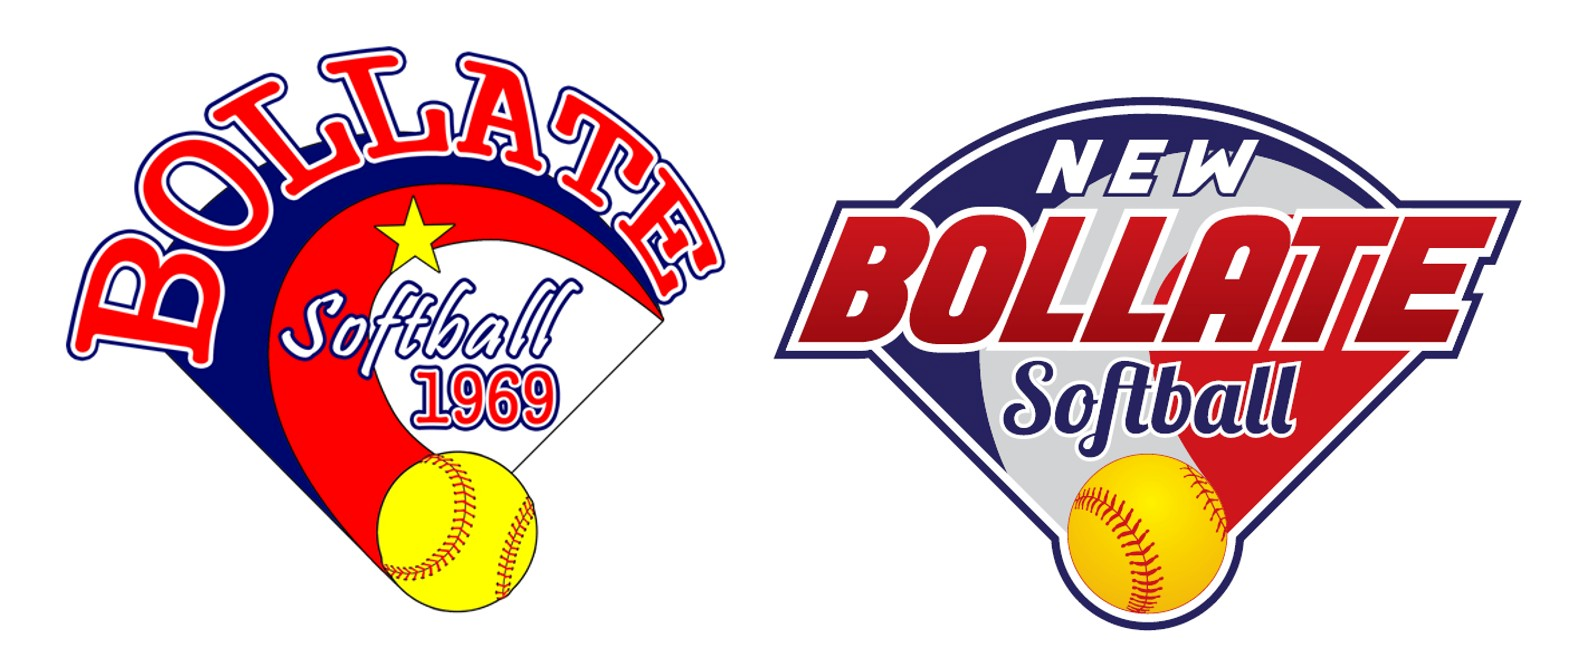 Bollate Softball 1969